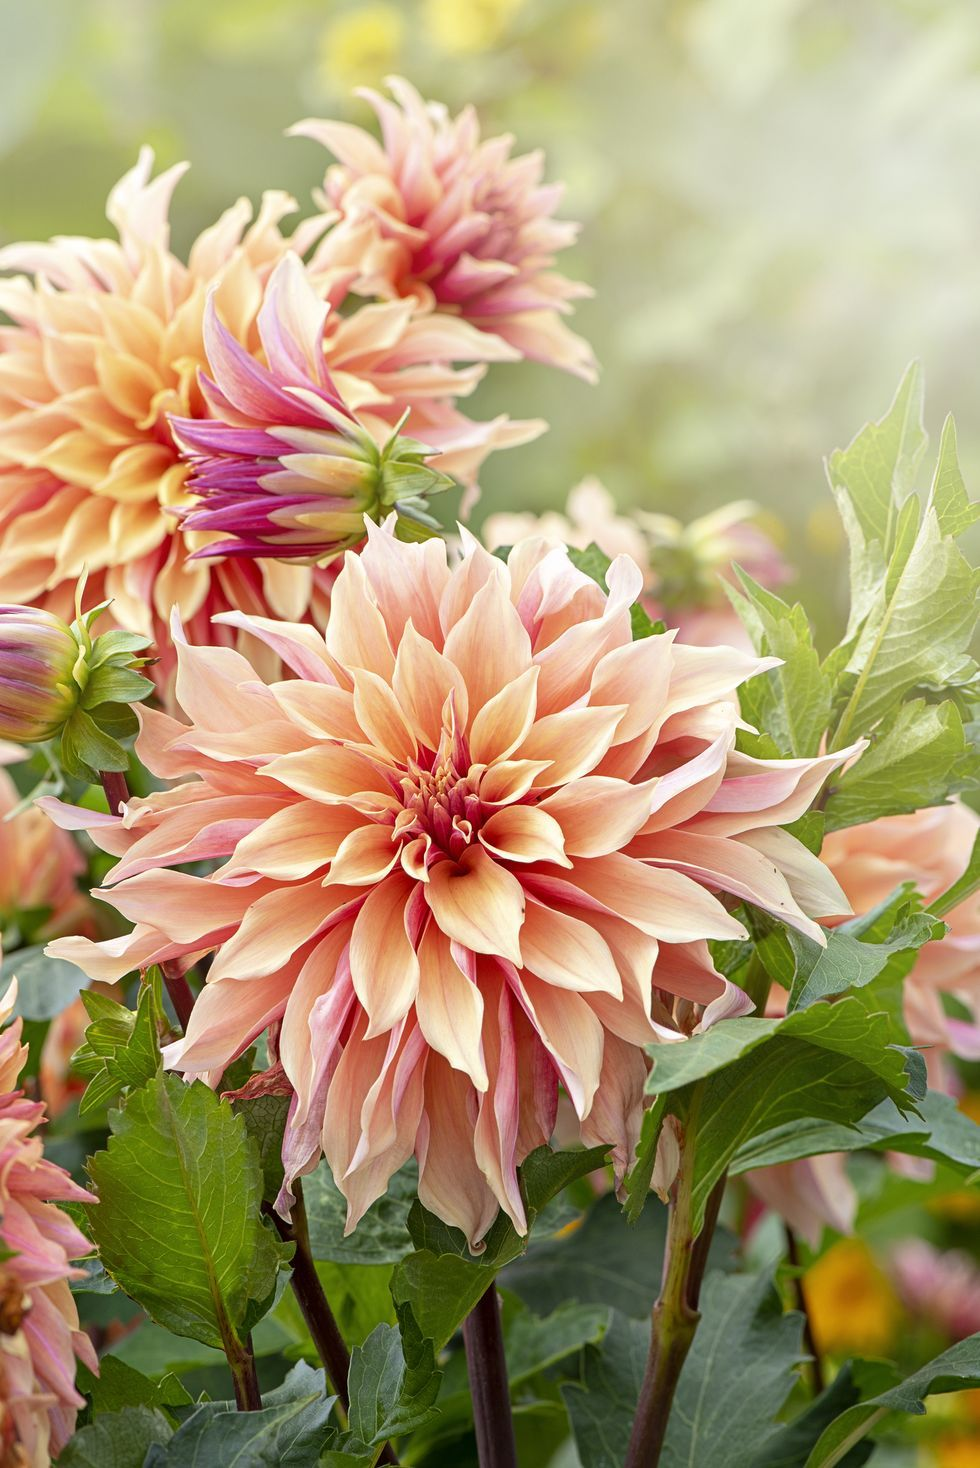 16 Flower Meanings That Will Transform Your Next Arrangement In 2020 Flower Meanings Dahlia Flower Flowers